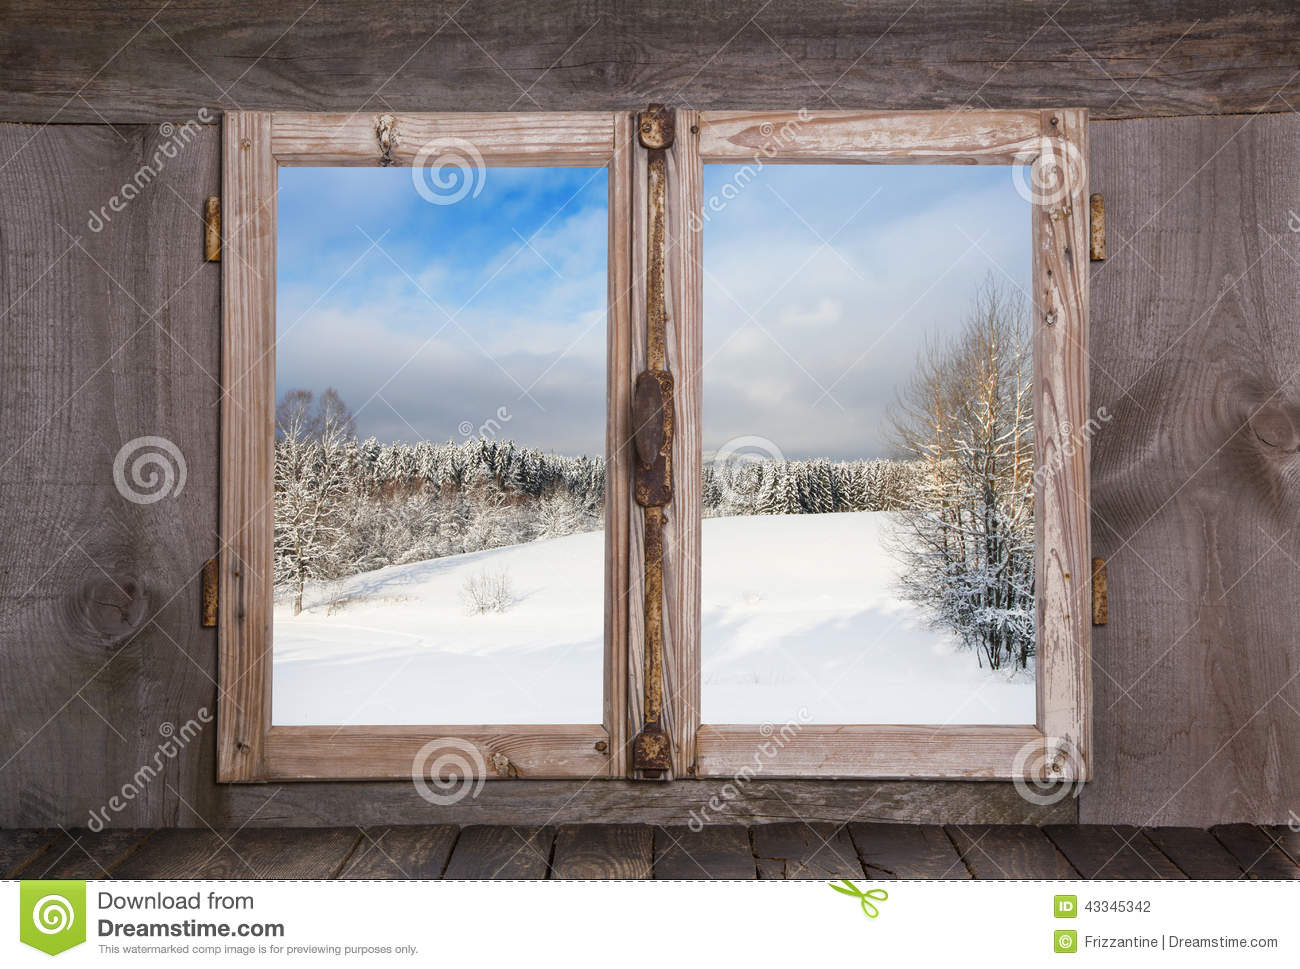 Snowy winter landscape. View out of an old rustic wooden window.